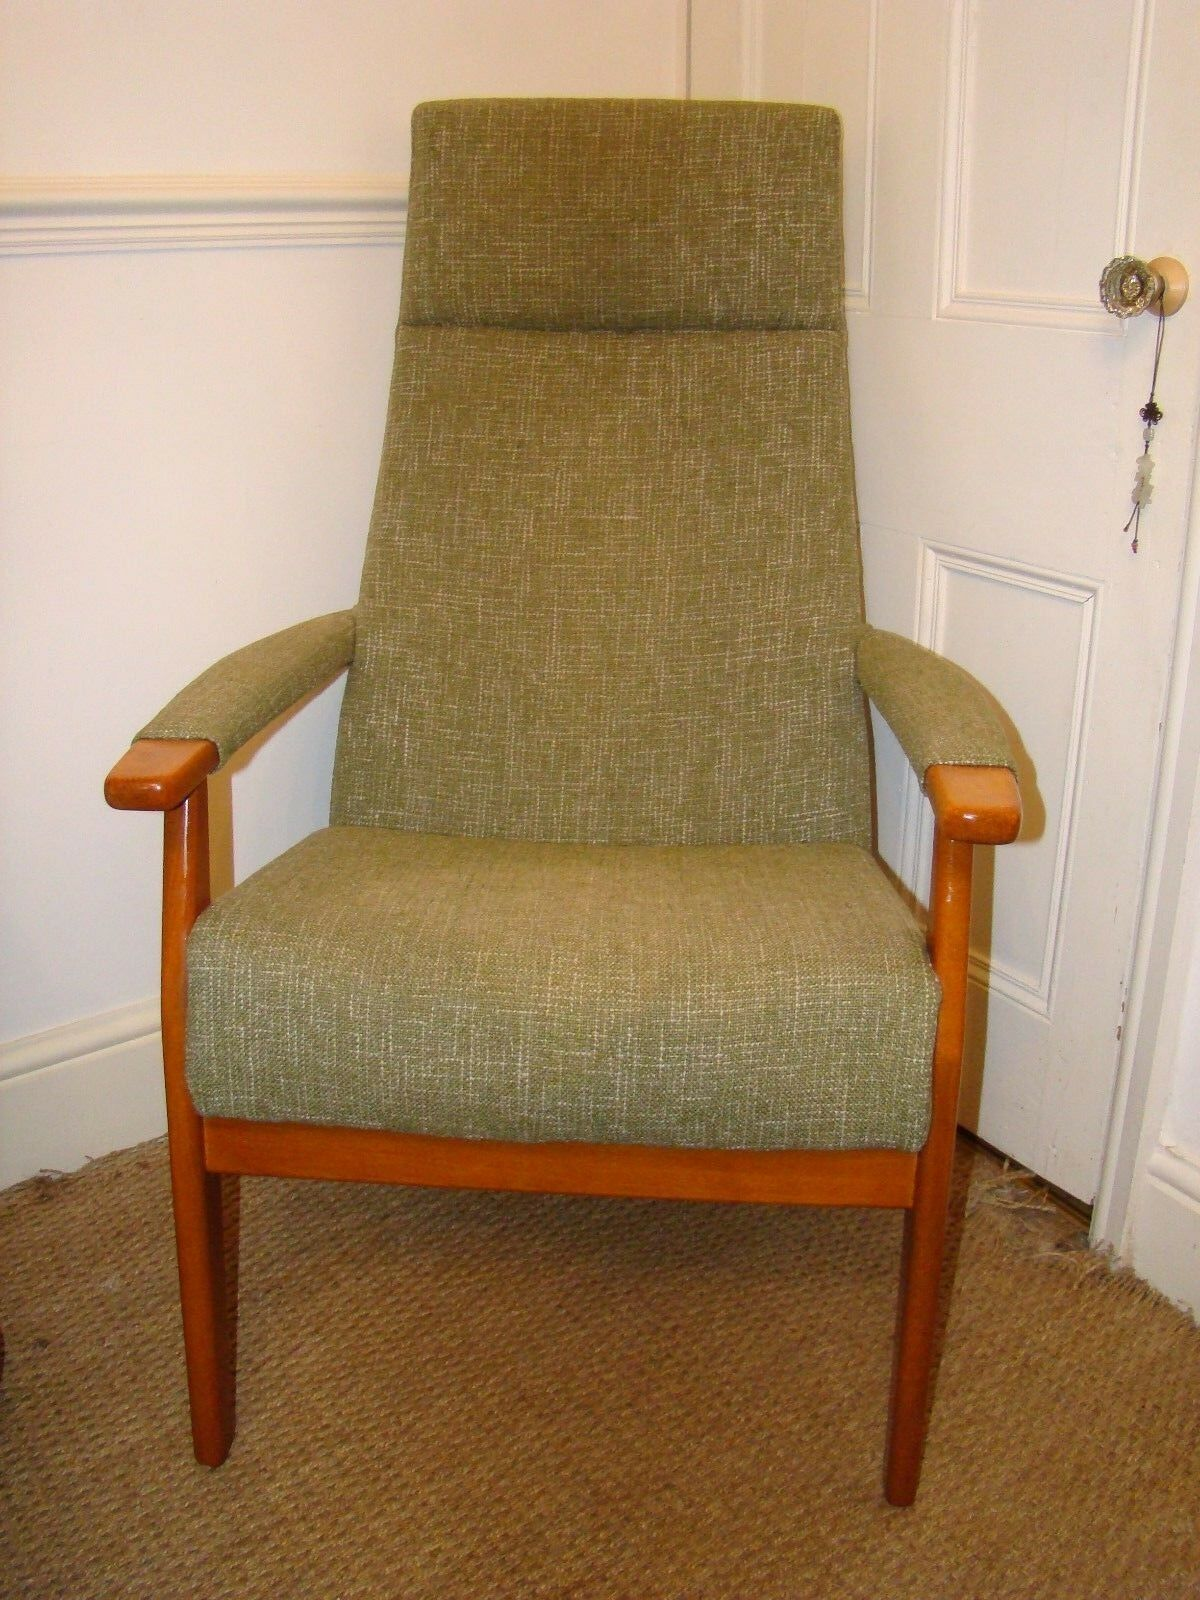 Vintage Retro Original Parker Knoll Armchair Easychair Lounge Chair Sage Green